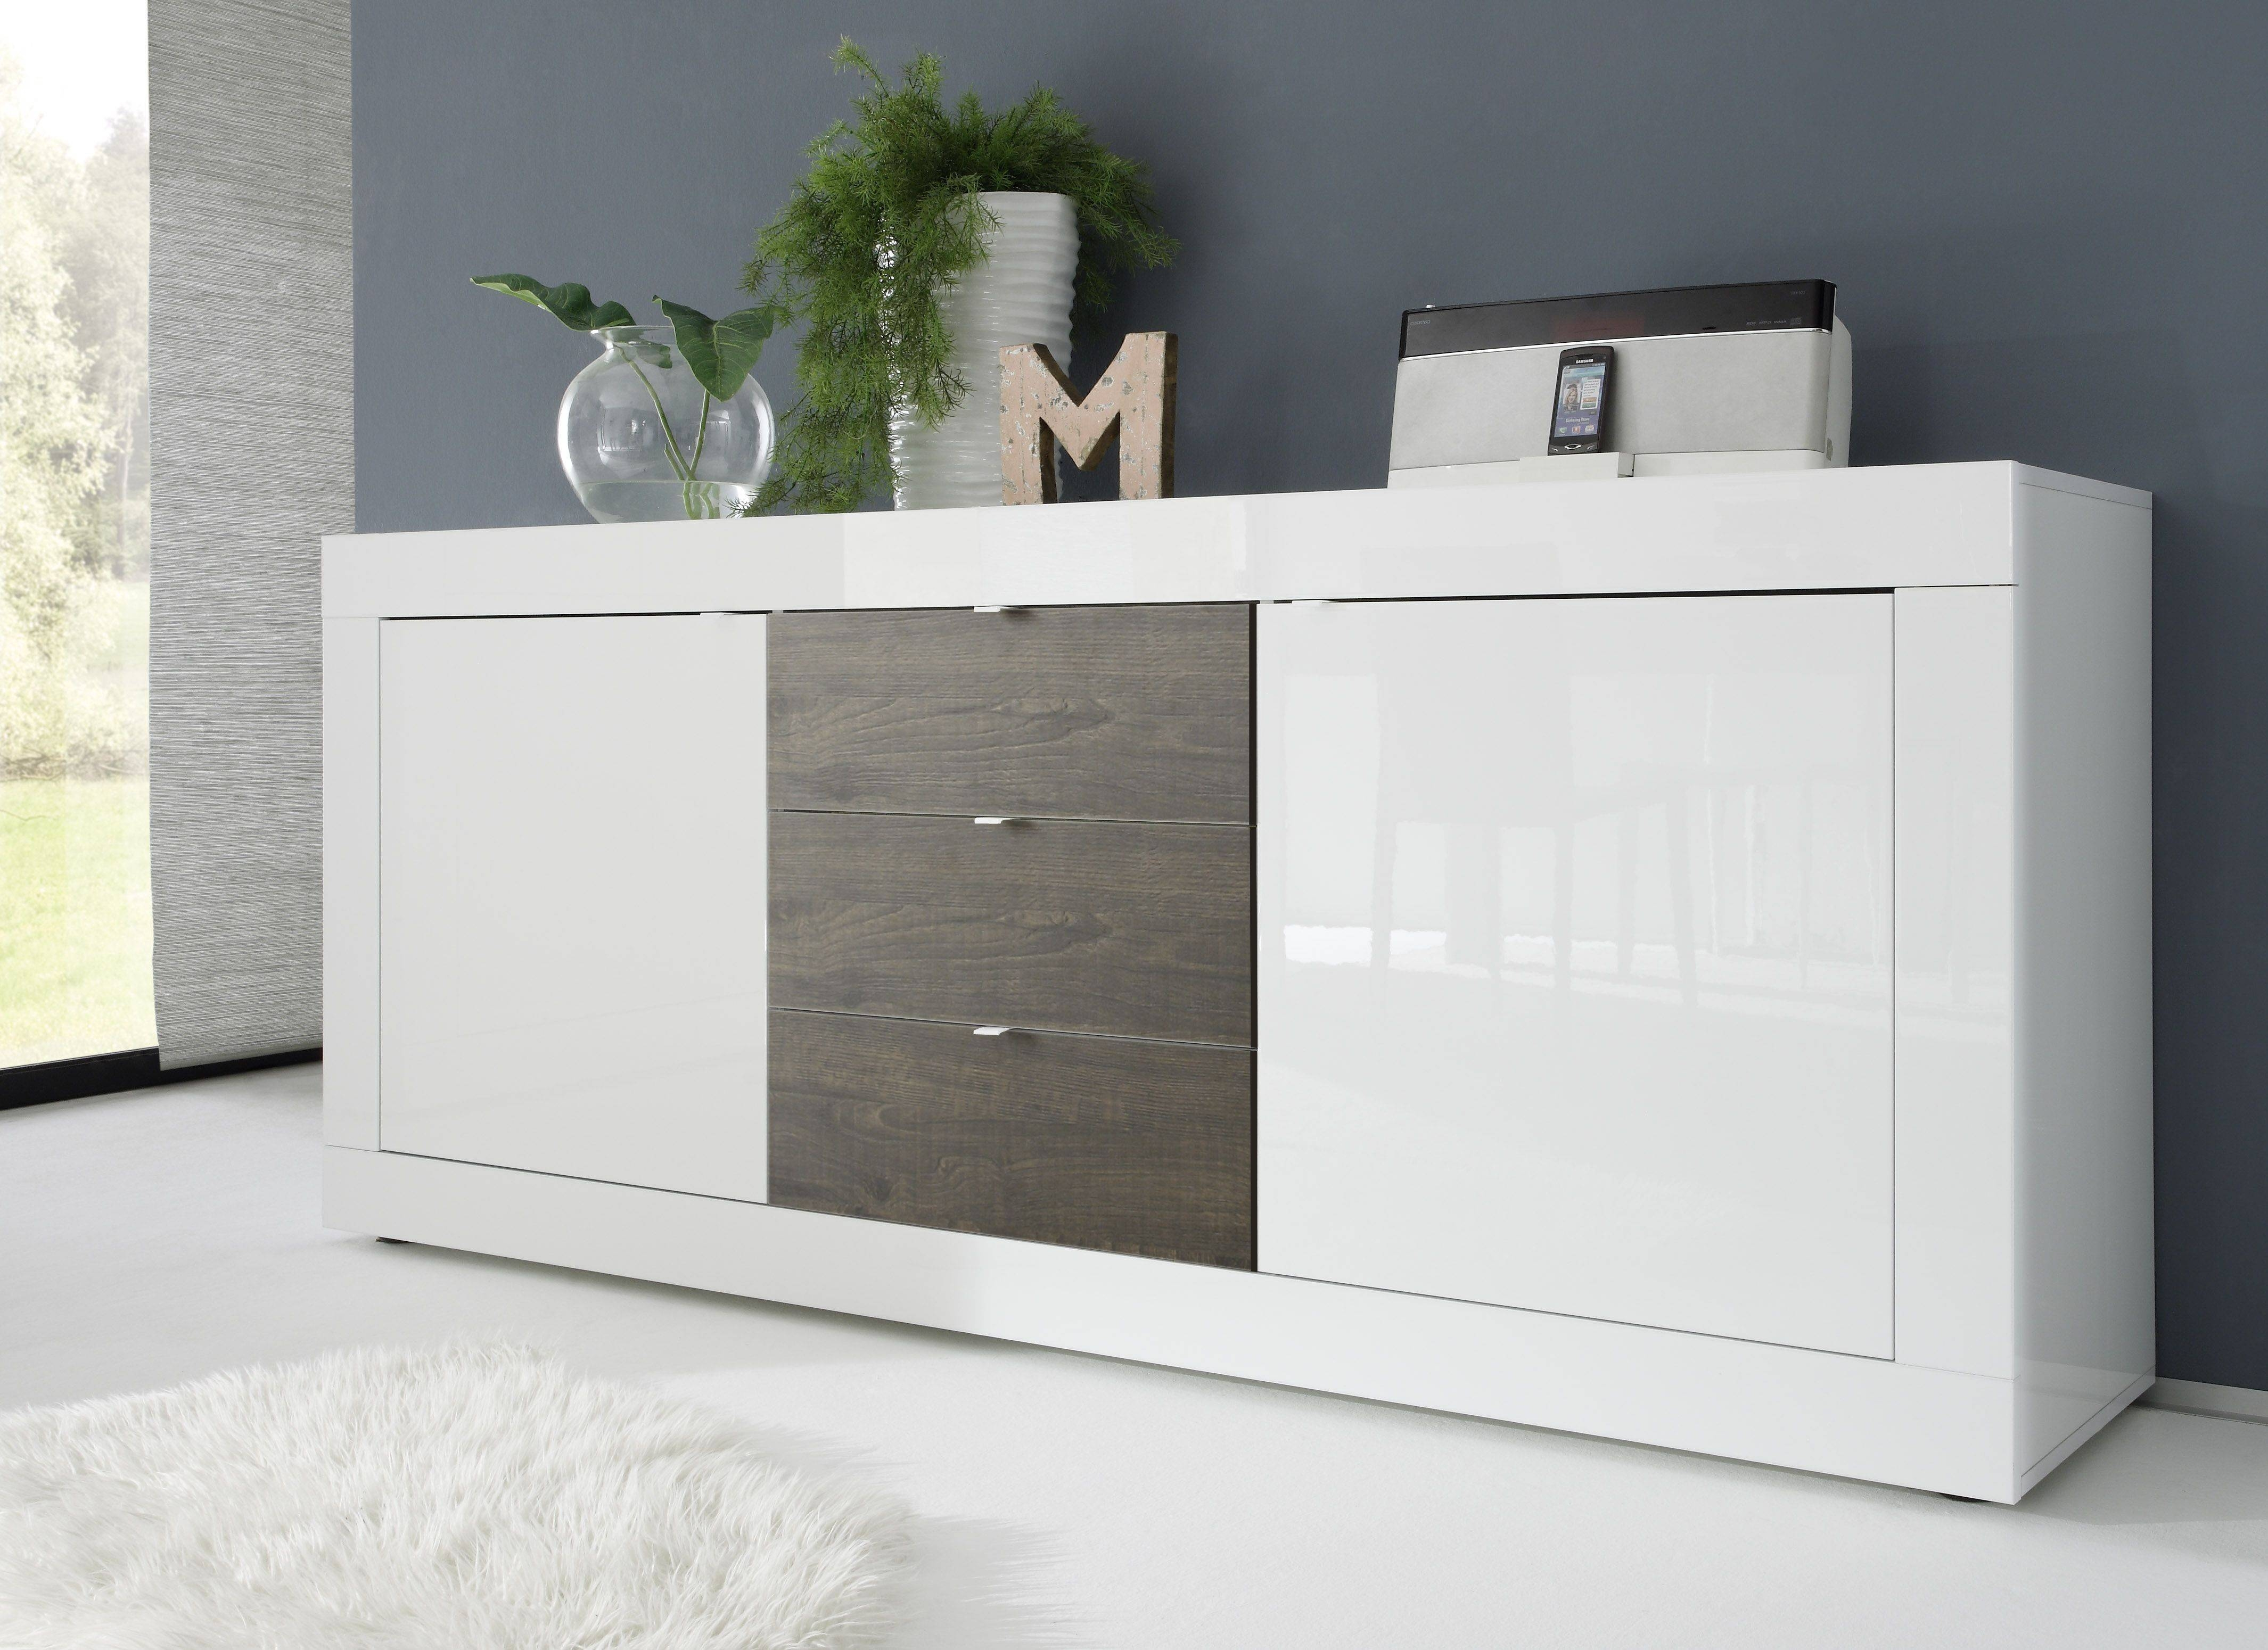 Dolcevita Ii White Gloss And Wenge Sideboard – Sideboards – Sena Throughout Gloss White Sideboards (View 3 of 15)